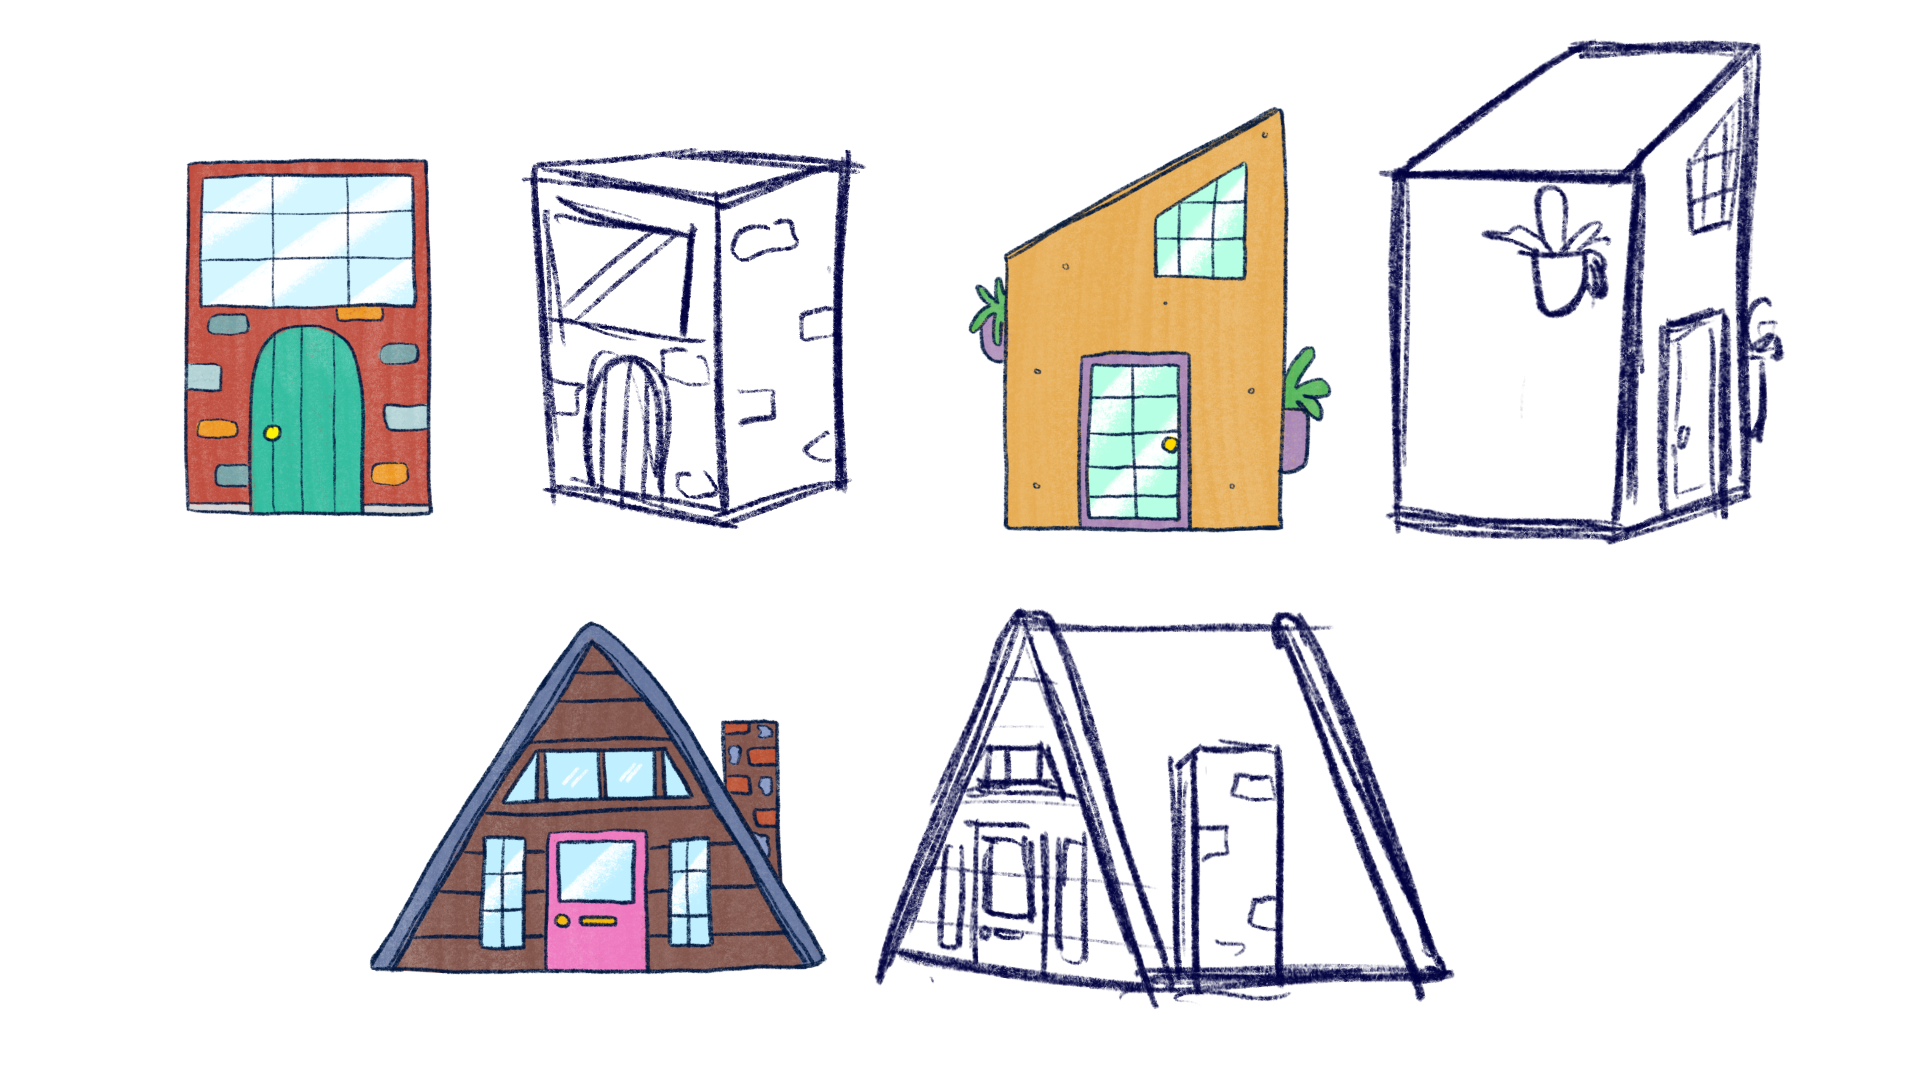 These tiny homes were sketchbook doodles, and I thought it'd be fun to sculpt them.